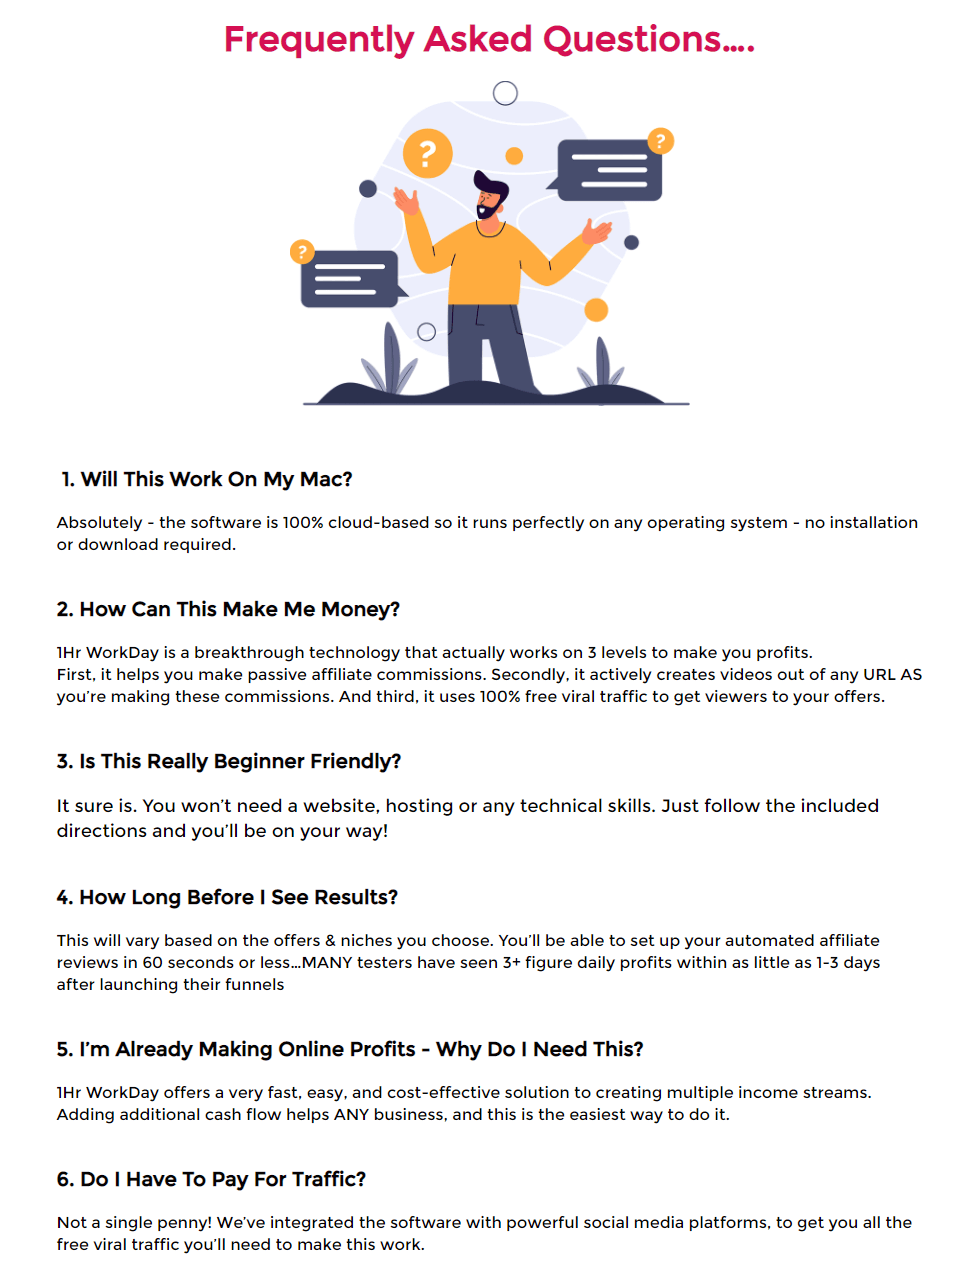 1-Hr-WorkDay-Review-QA